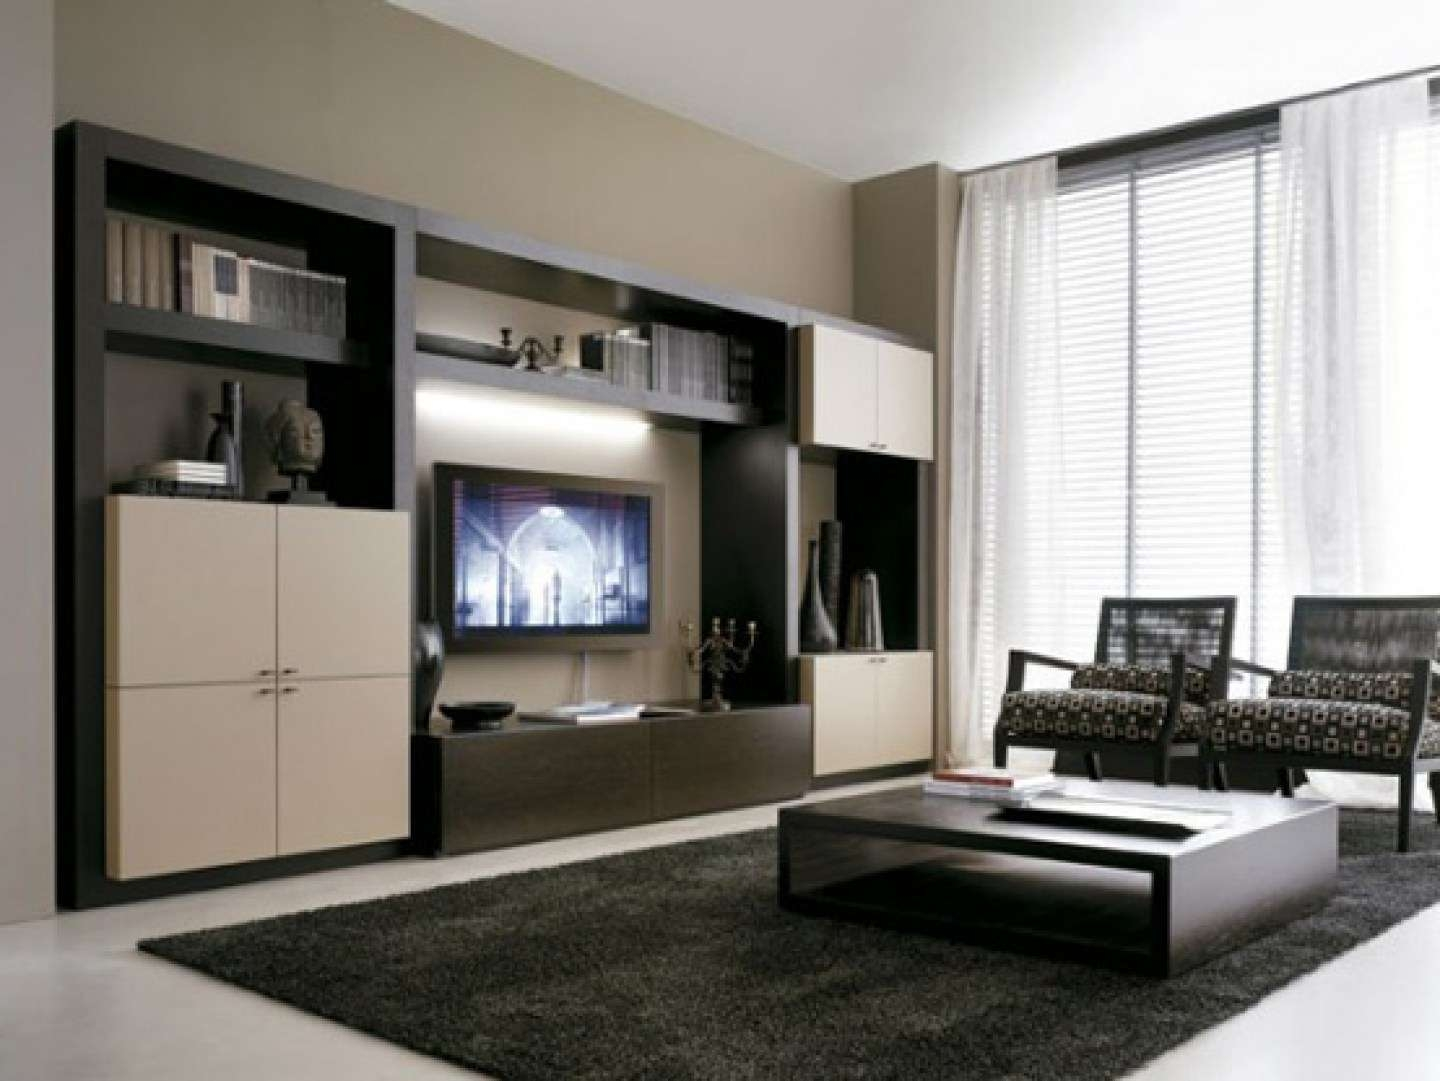 Living Room Tv Cabinet Design With Image | Mariapngt Regarding Living Room Tv Cabinets (View 13 of 20)